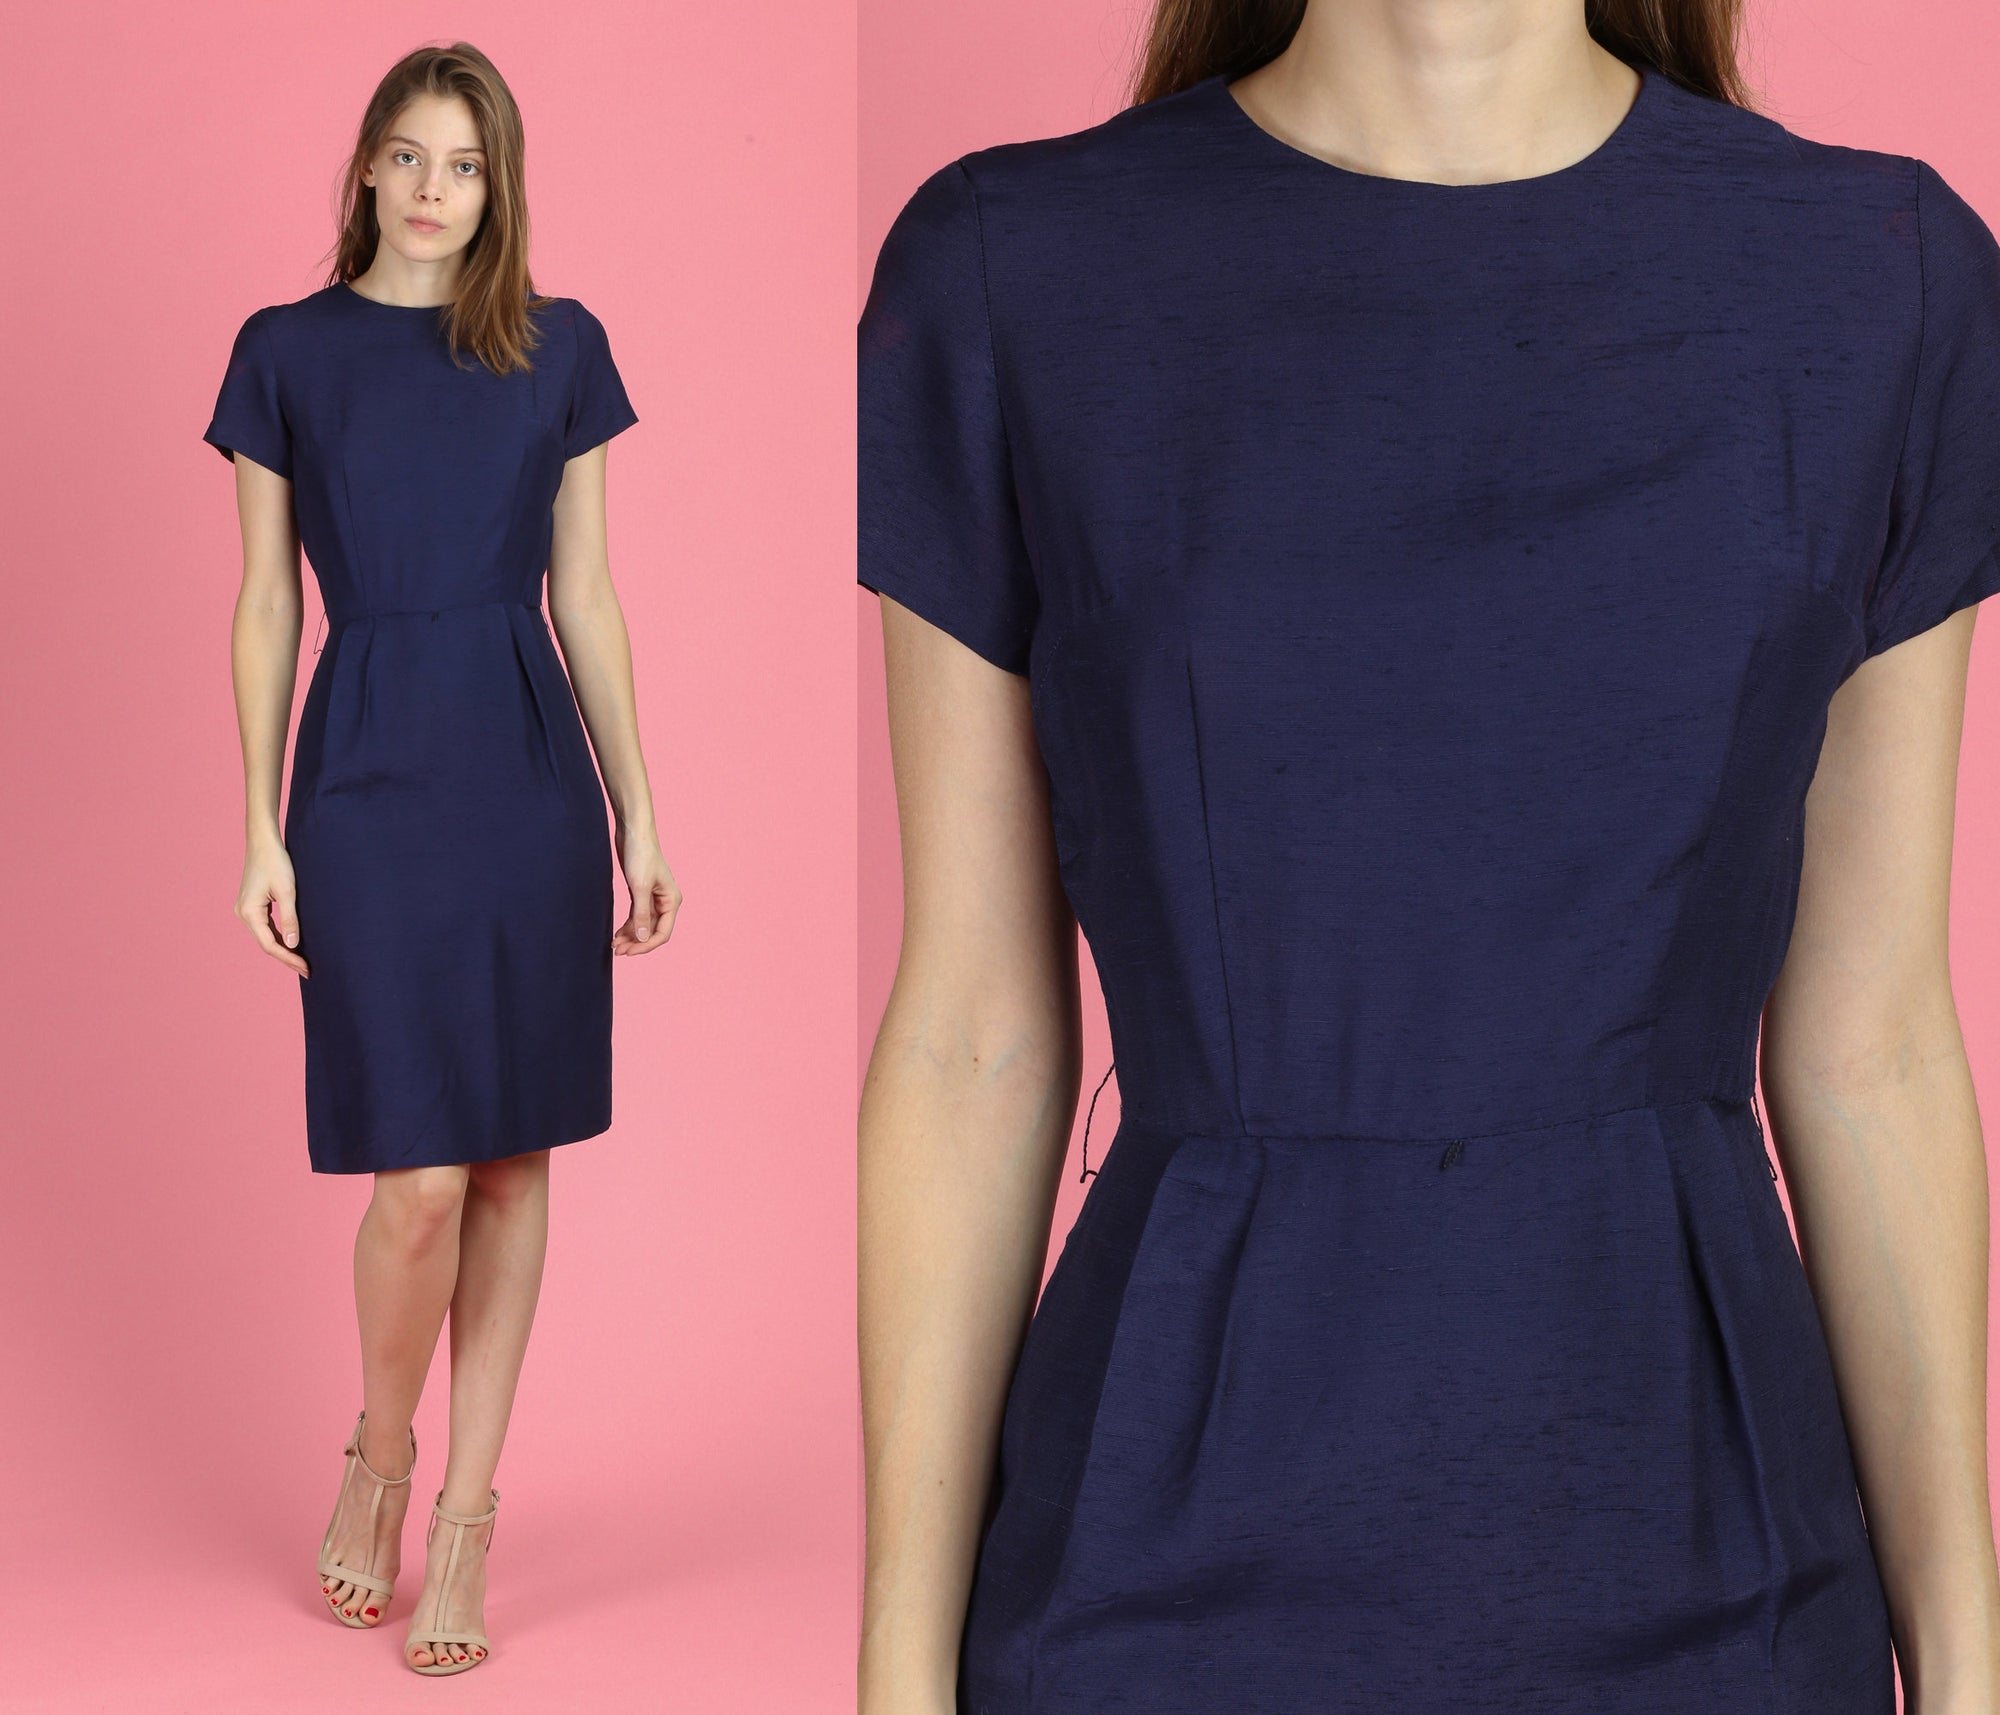 60s Navy Blue Sheath Wiggle Dress - XS to Small